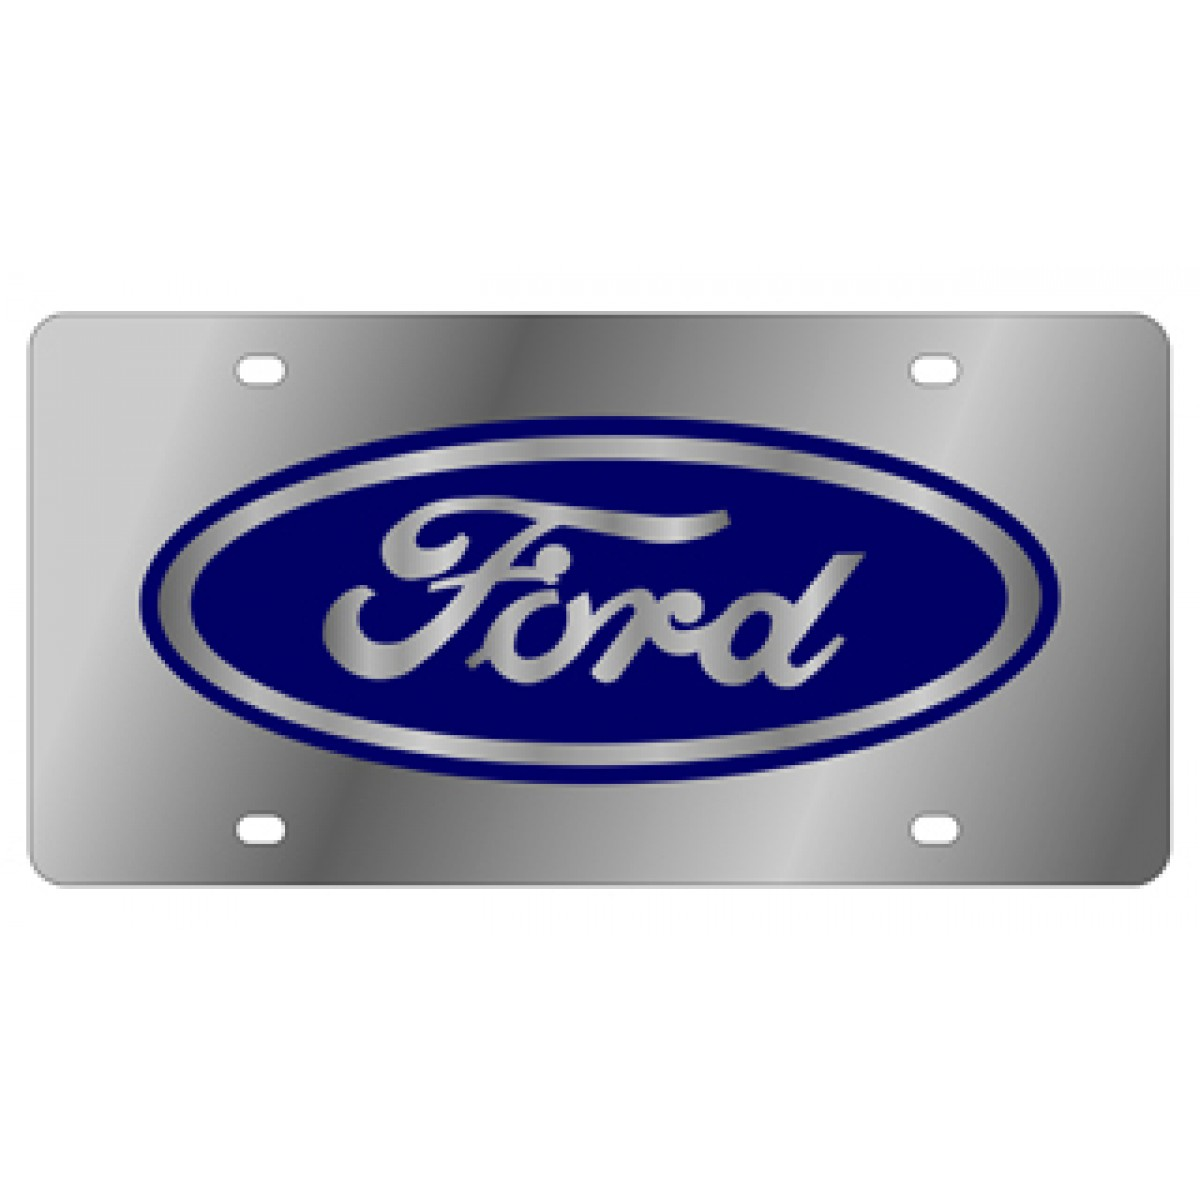 Ford motor company license plate ford for National motor vehicle license organization